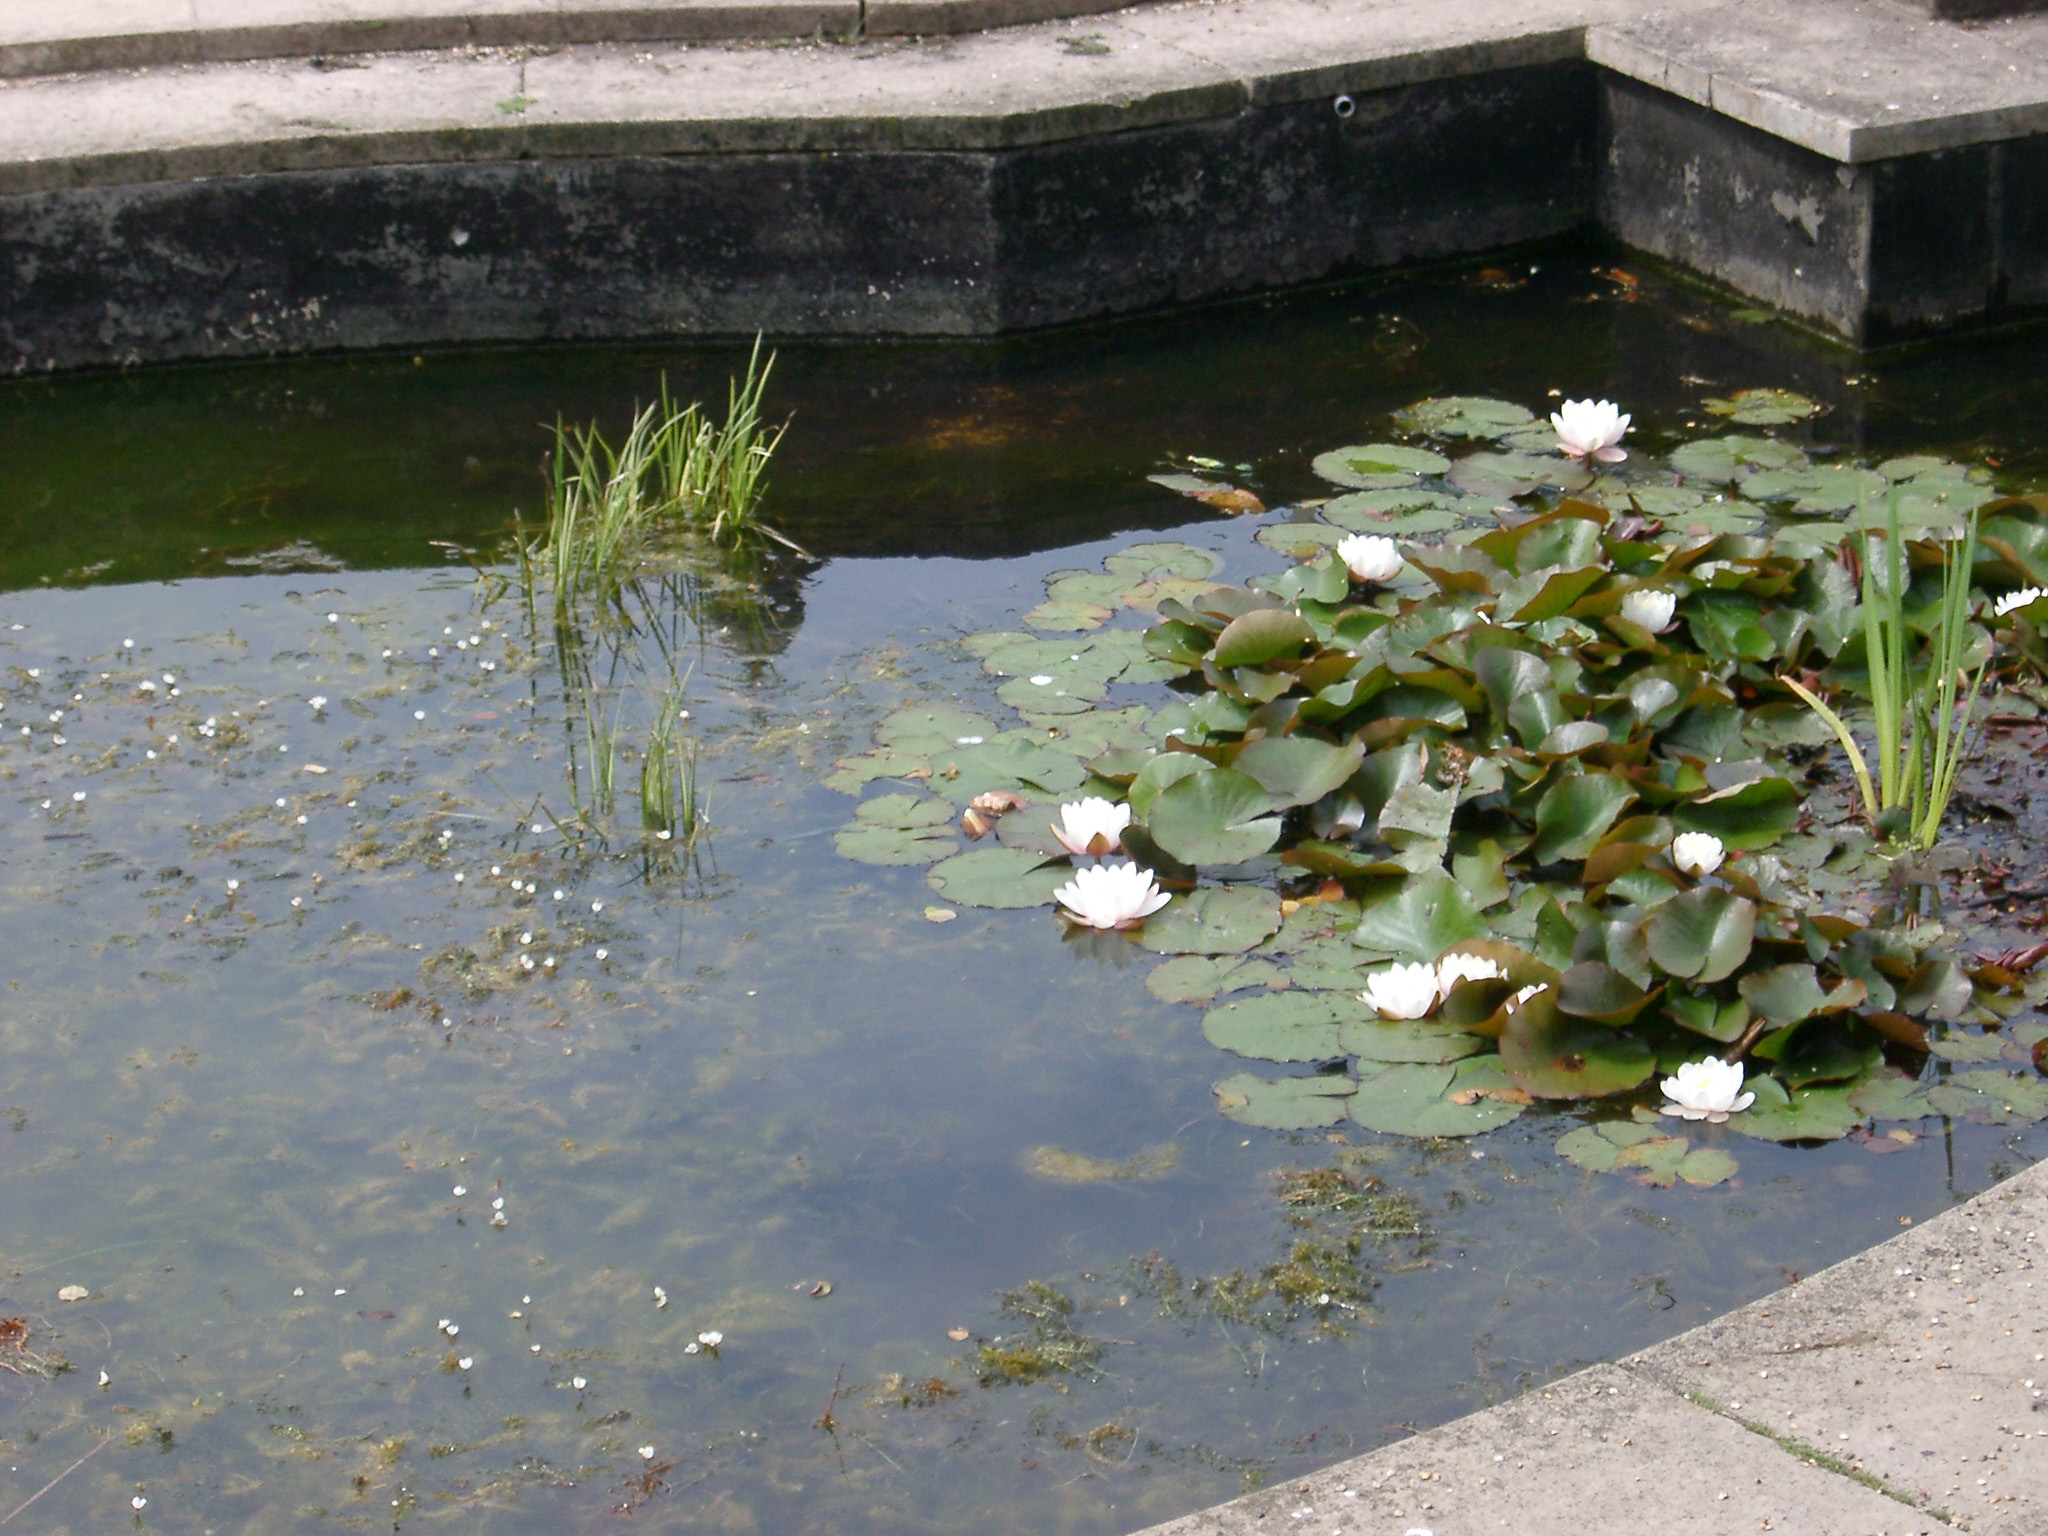 Small pond with pretty yellow flowering water lilies and green lily pads floating on the surface of the water